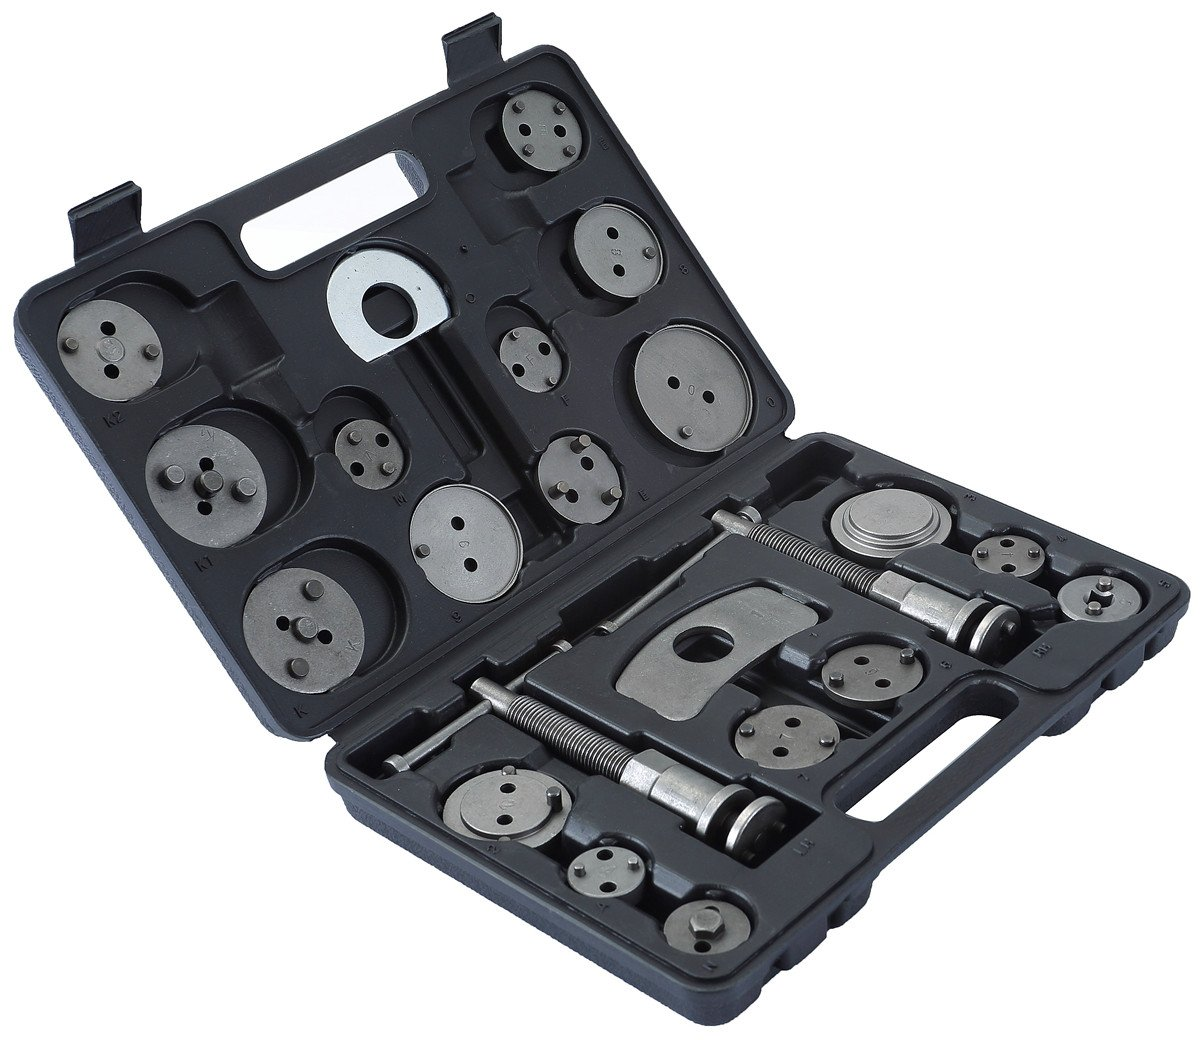 ATP 23pcs Heavy Duty Disc Brake Caliper Tool Set and Wind Back Kit for Brake Pad Replacement Fits Most American, European, Japanese Makes/Models